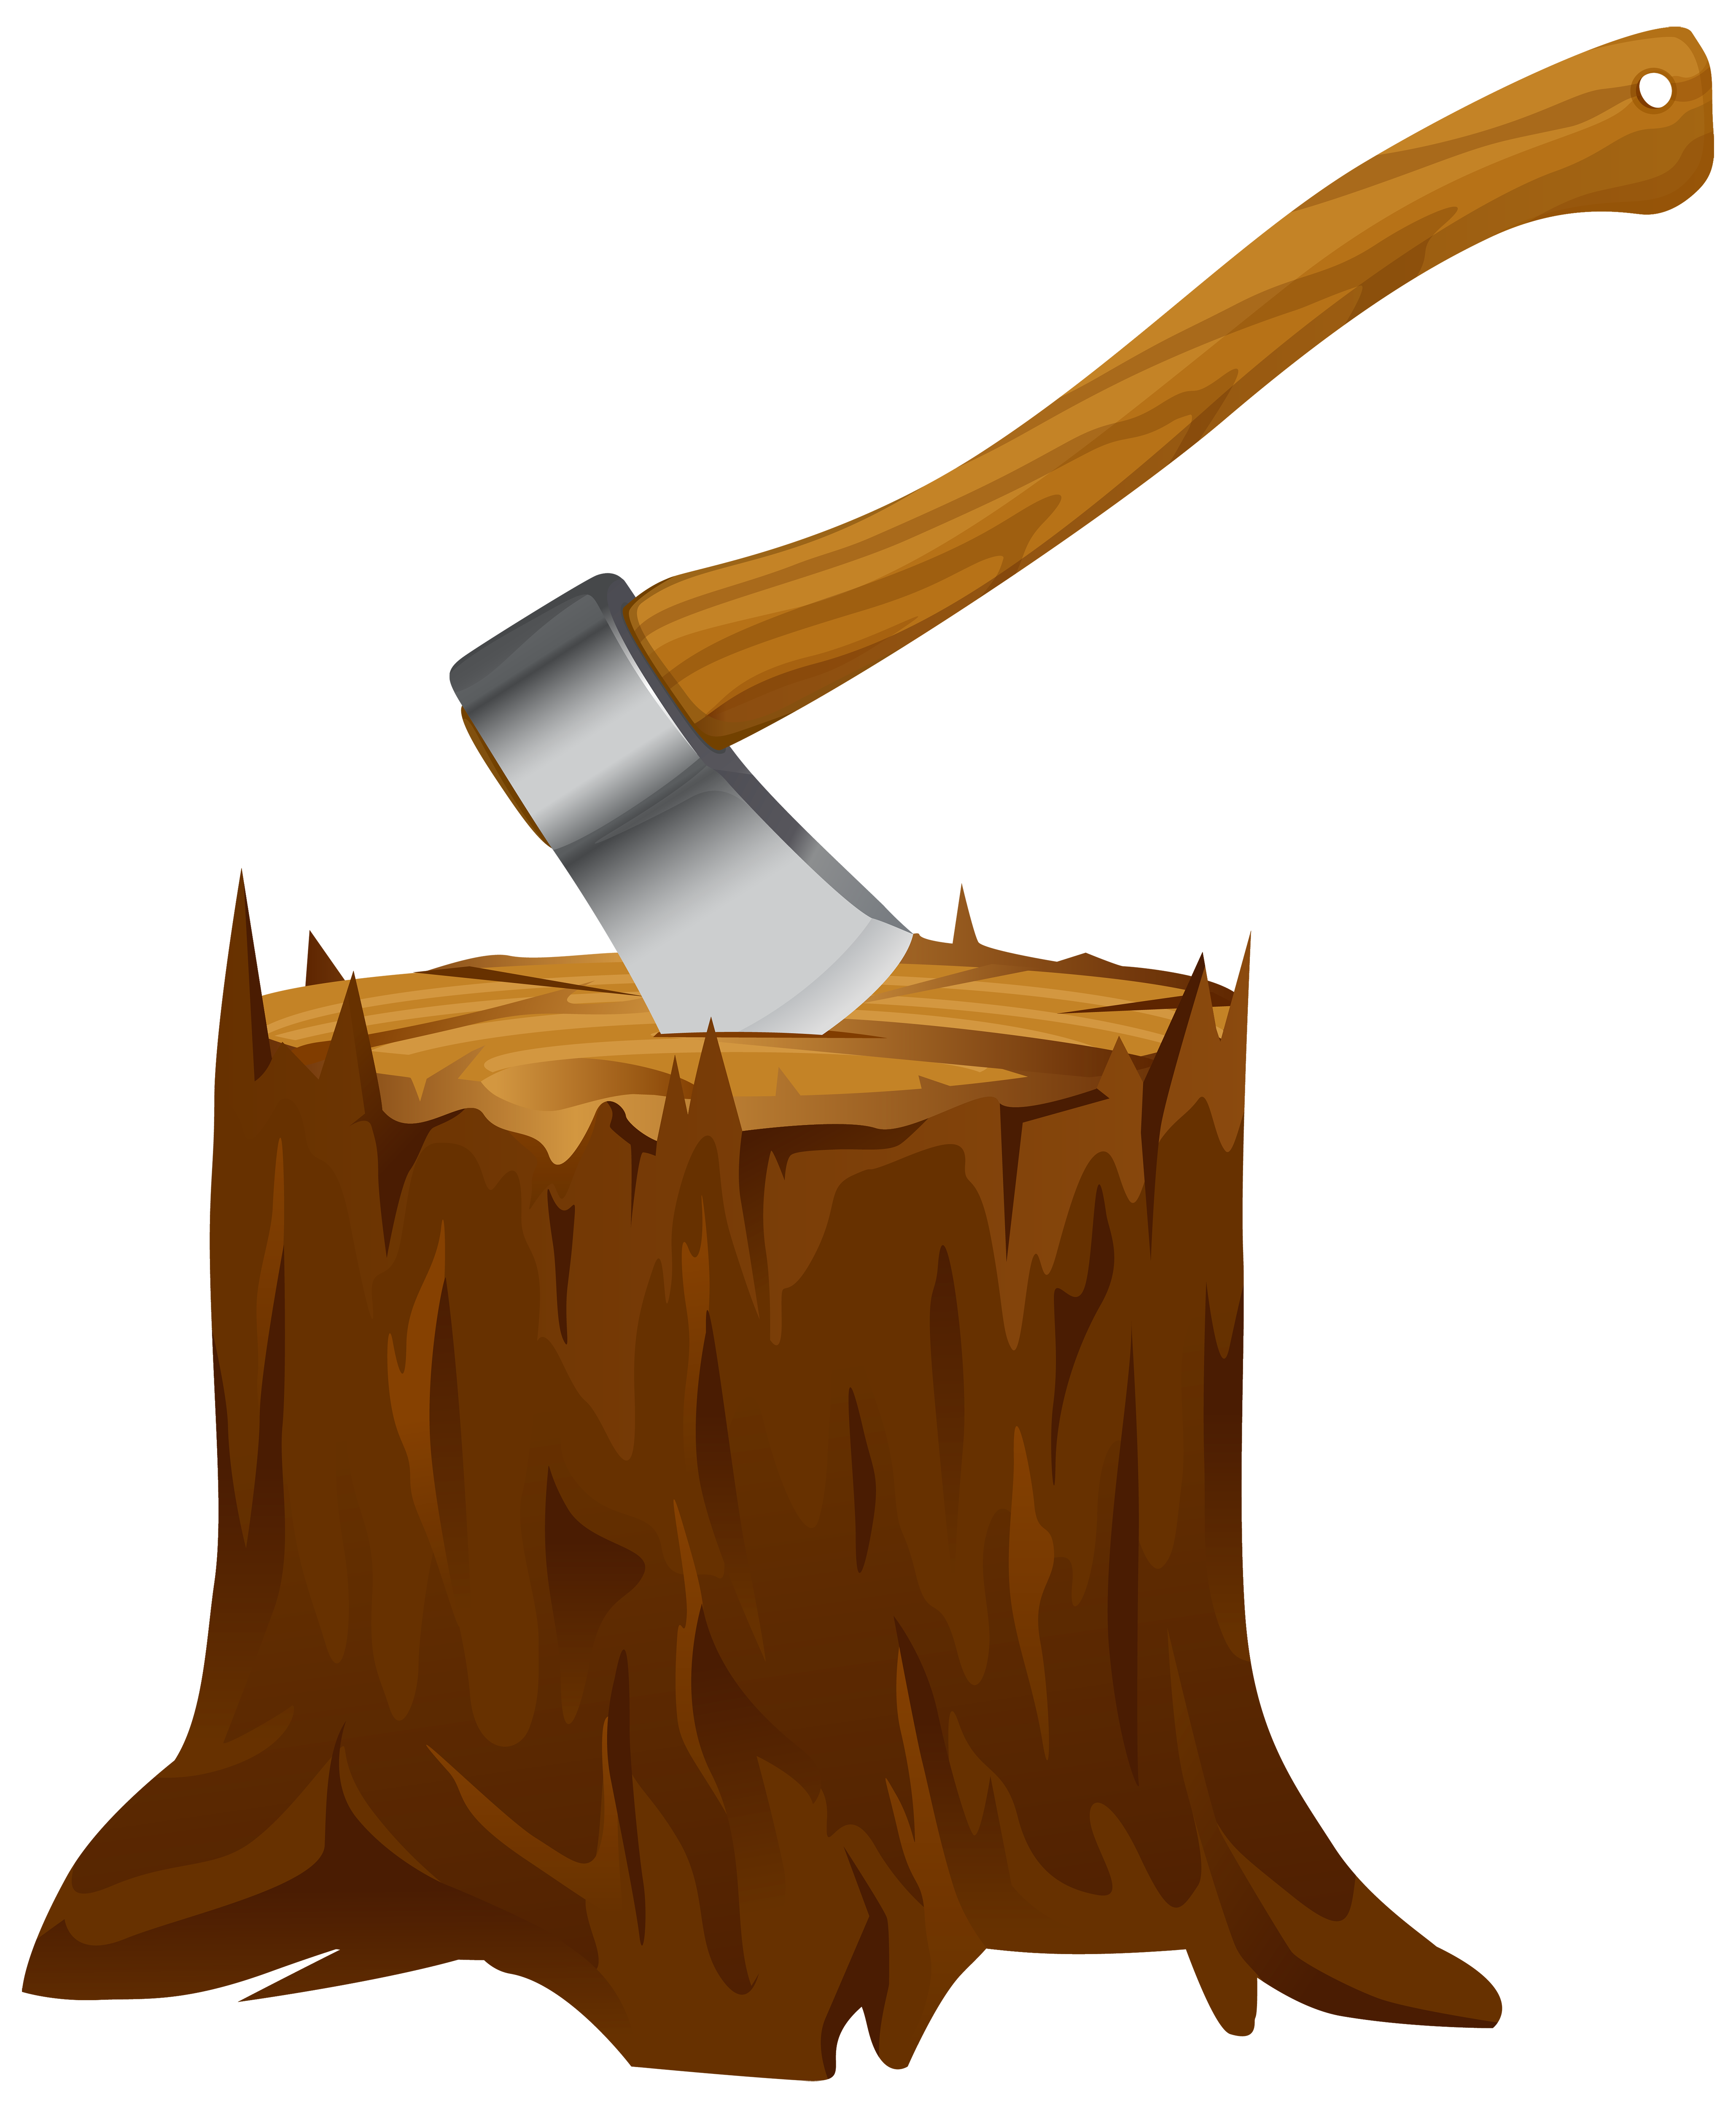 Tree Stump Clipart Images.